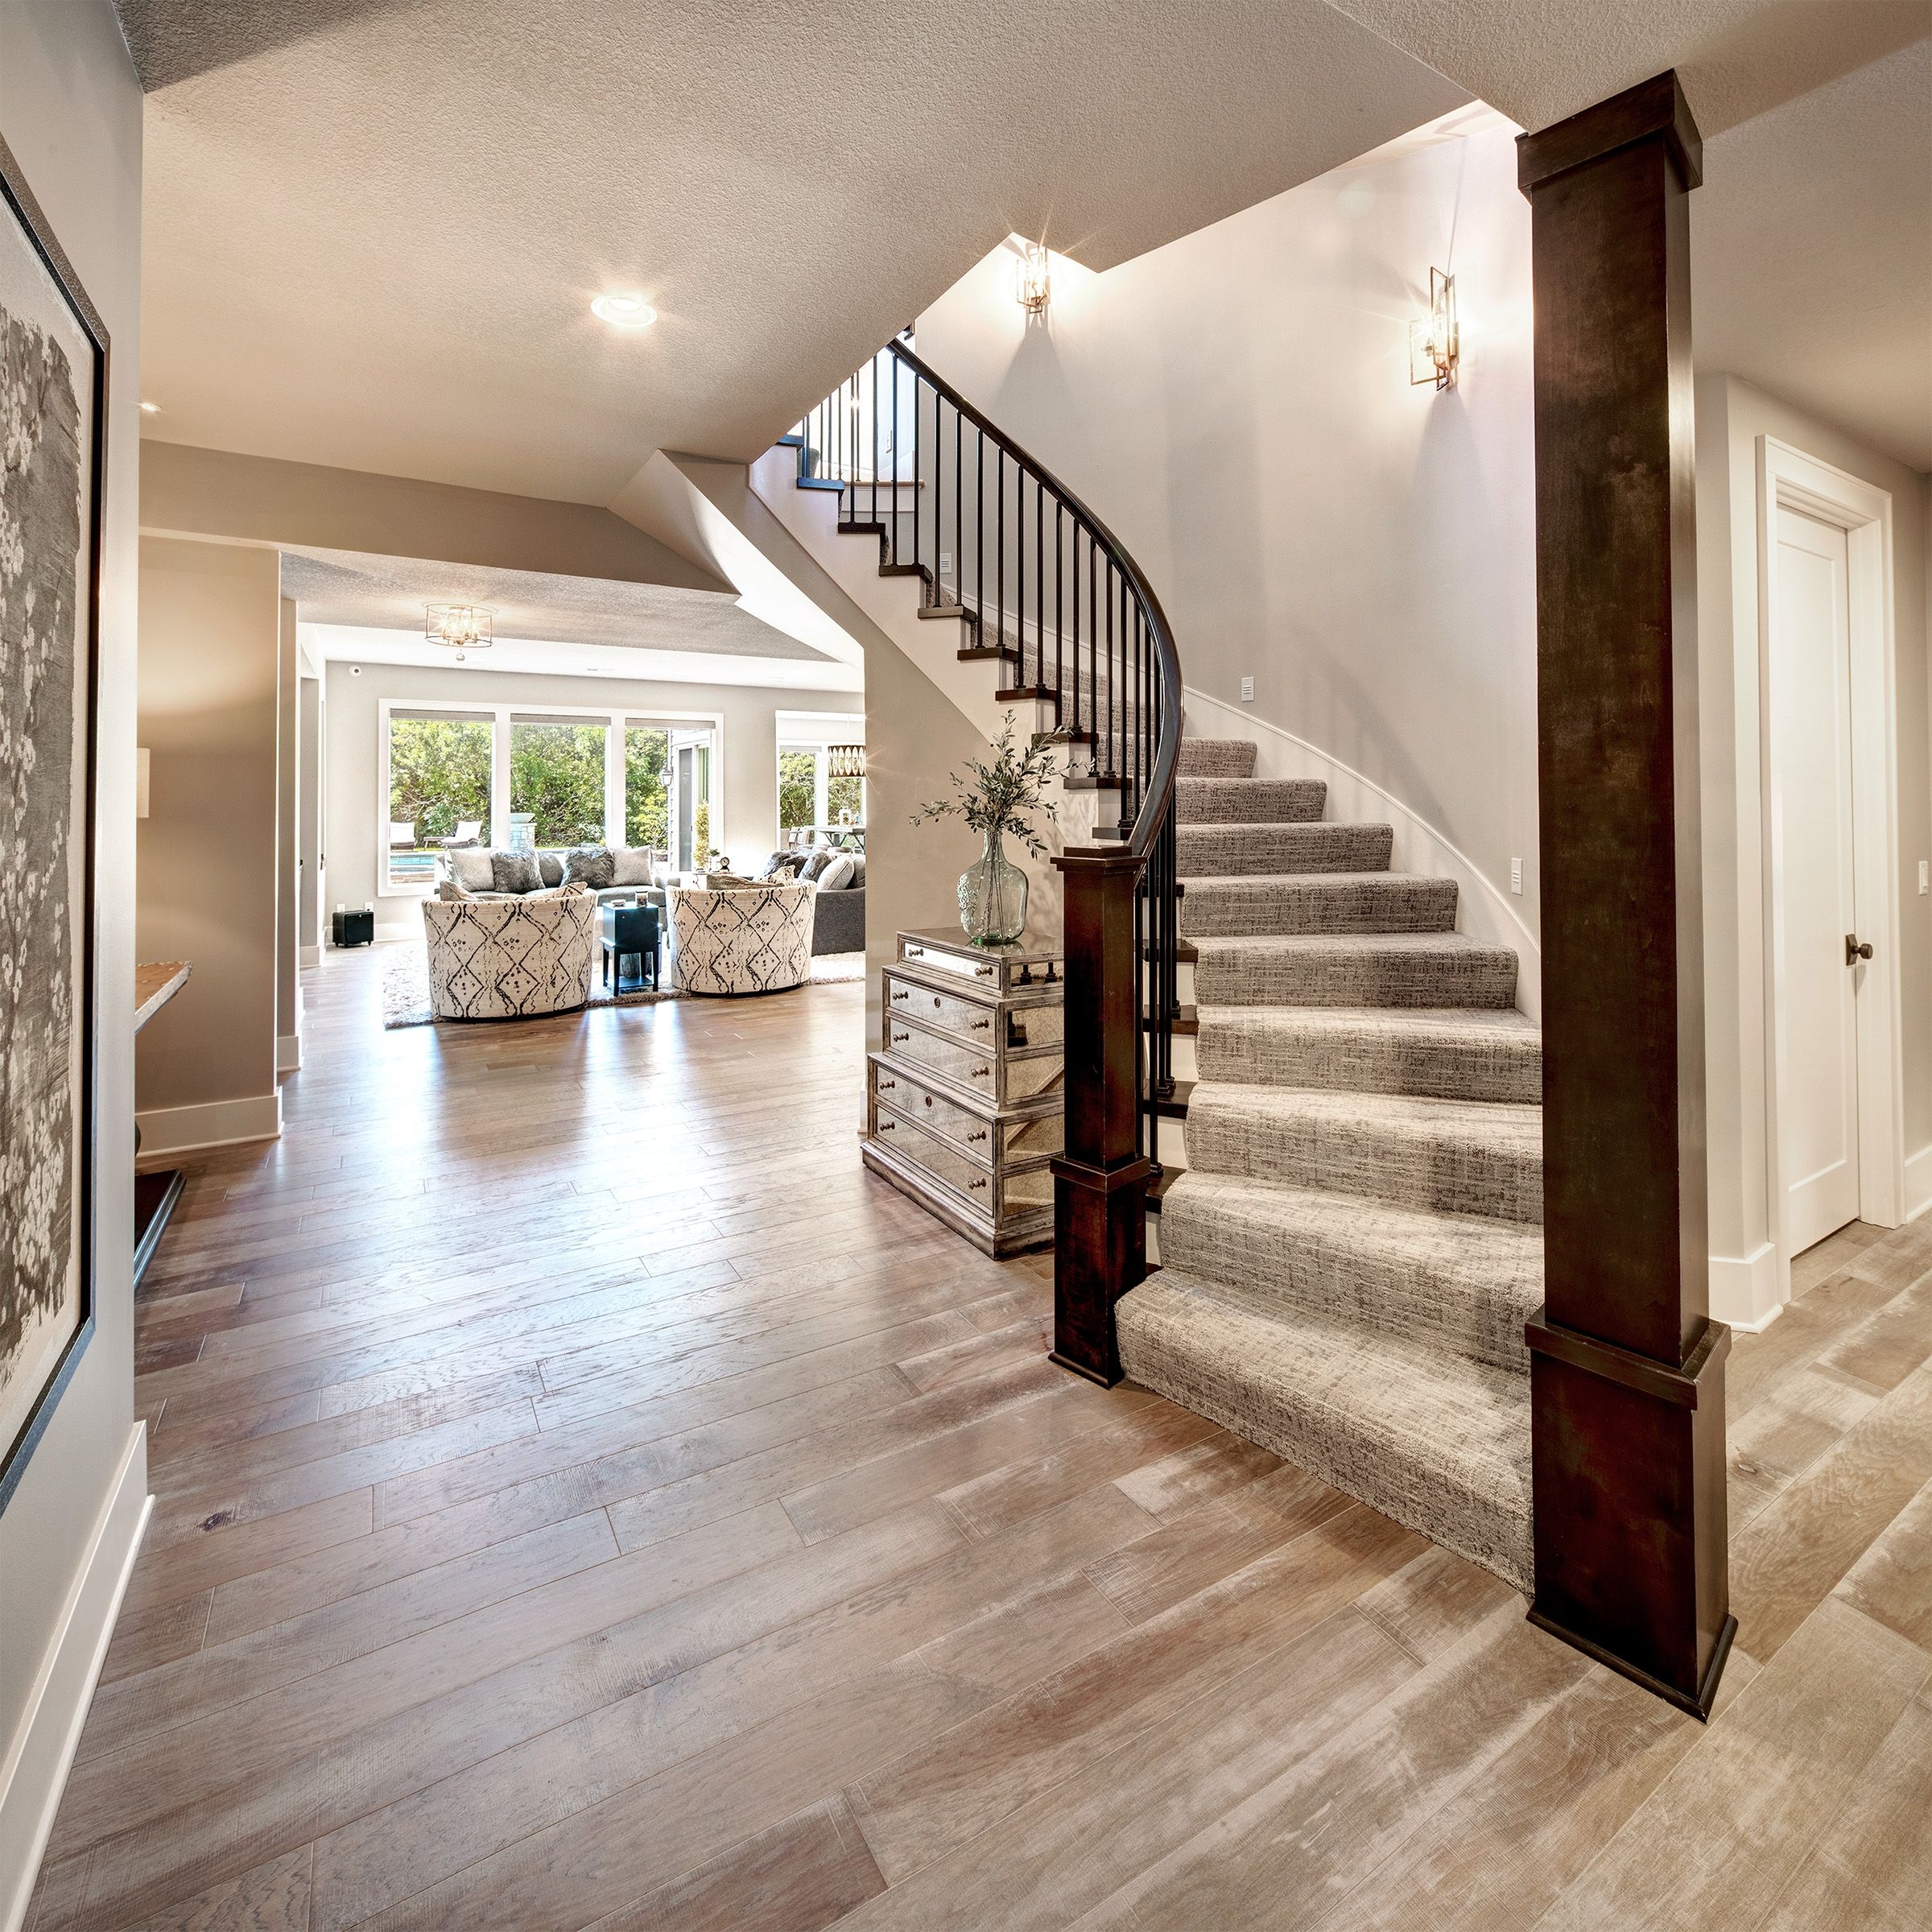 Curved Staircase To Lower Level Open Concept Light Wood Floors Traditional Staircase Wood Floor Stairs Light Wood Floors